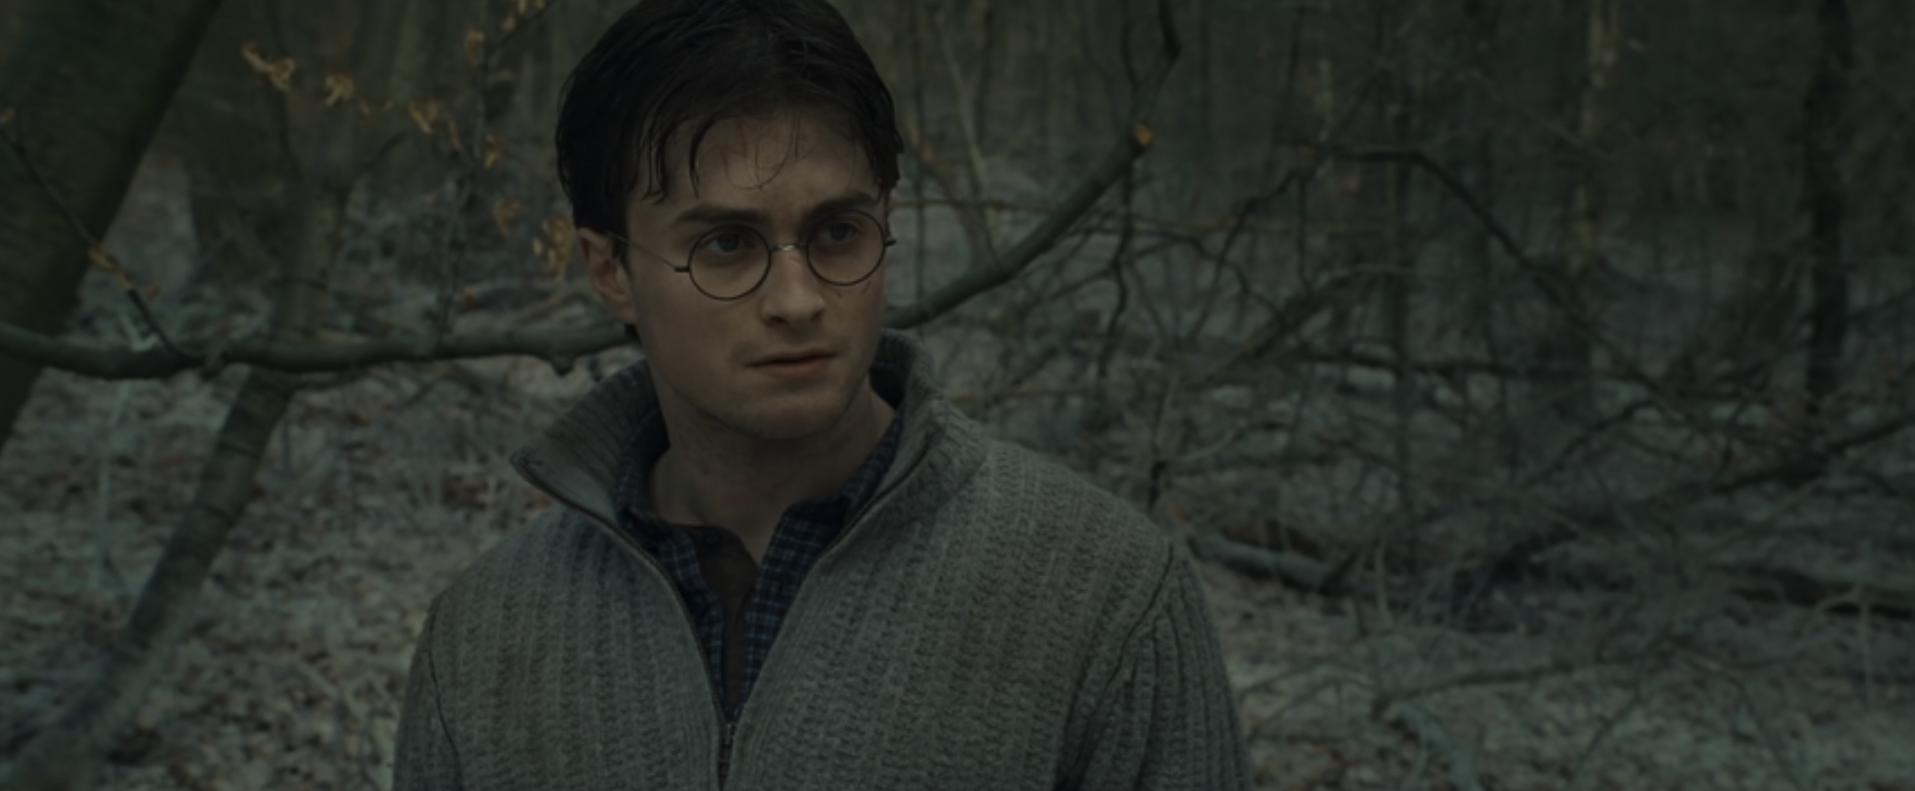 harry potter and the deathly hallows part 1 is all grown up